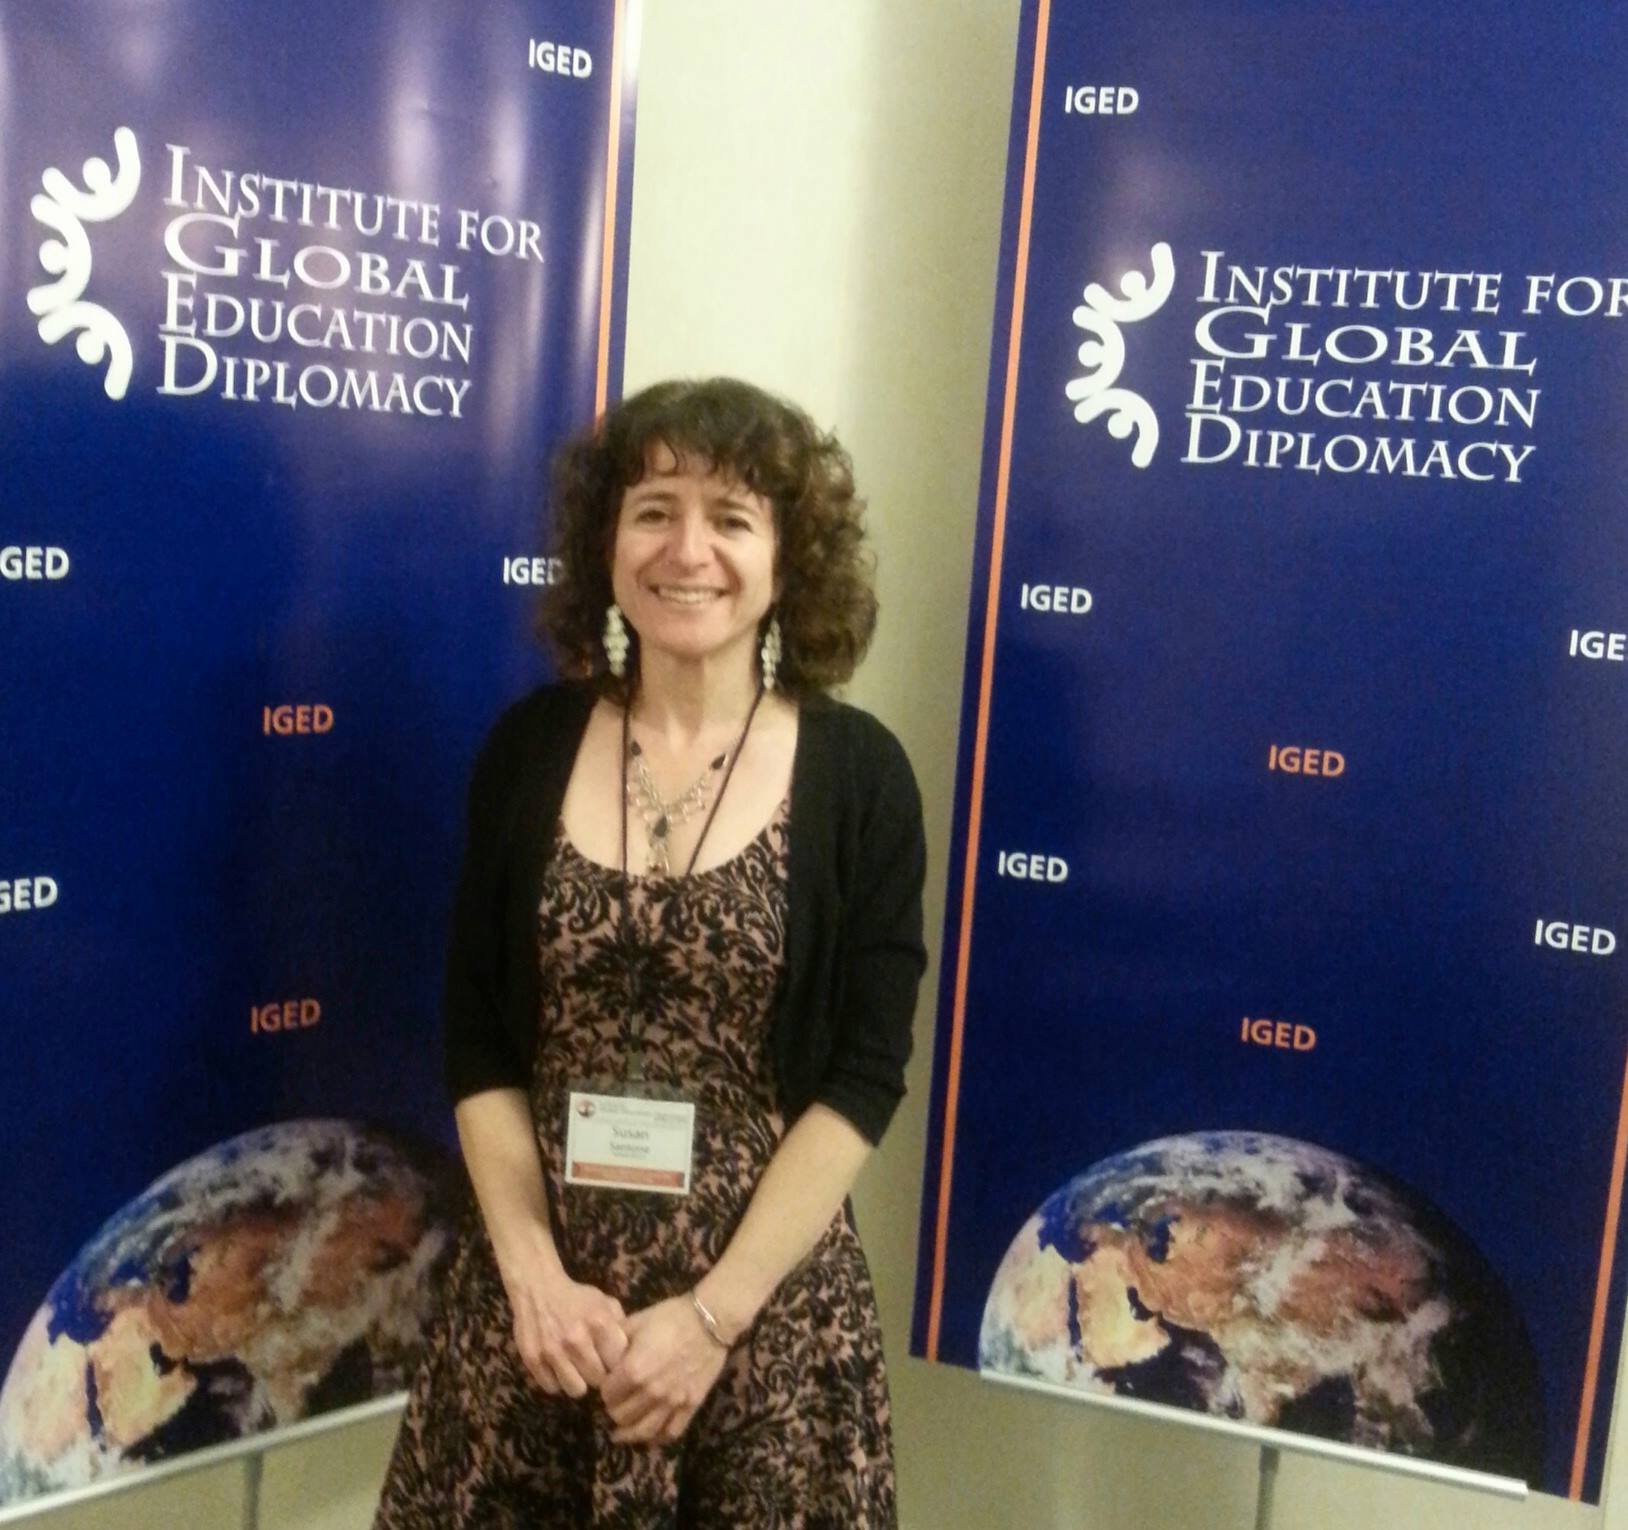 Susan Santone at the Institude for Global Education Diplomacy Conference